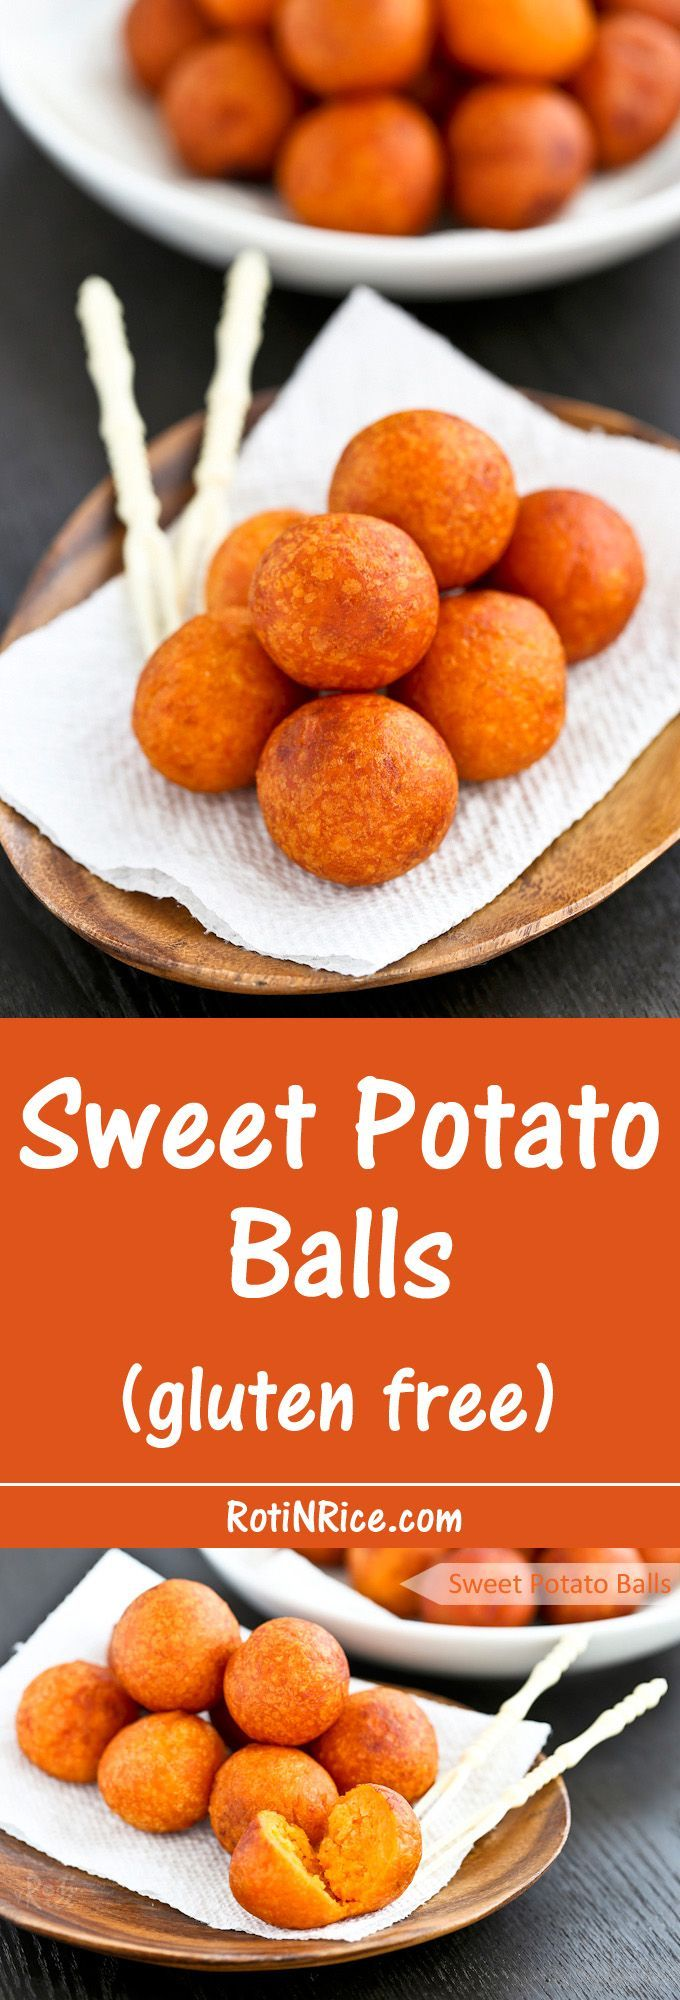 Only a few simple ingredients used in these gluten free Sweet Potato Balls deep fried to golden perfection. They make a tasty tea time or snack time treat.